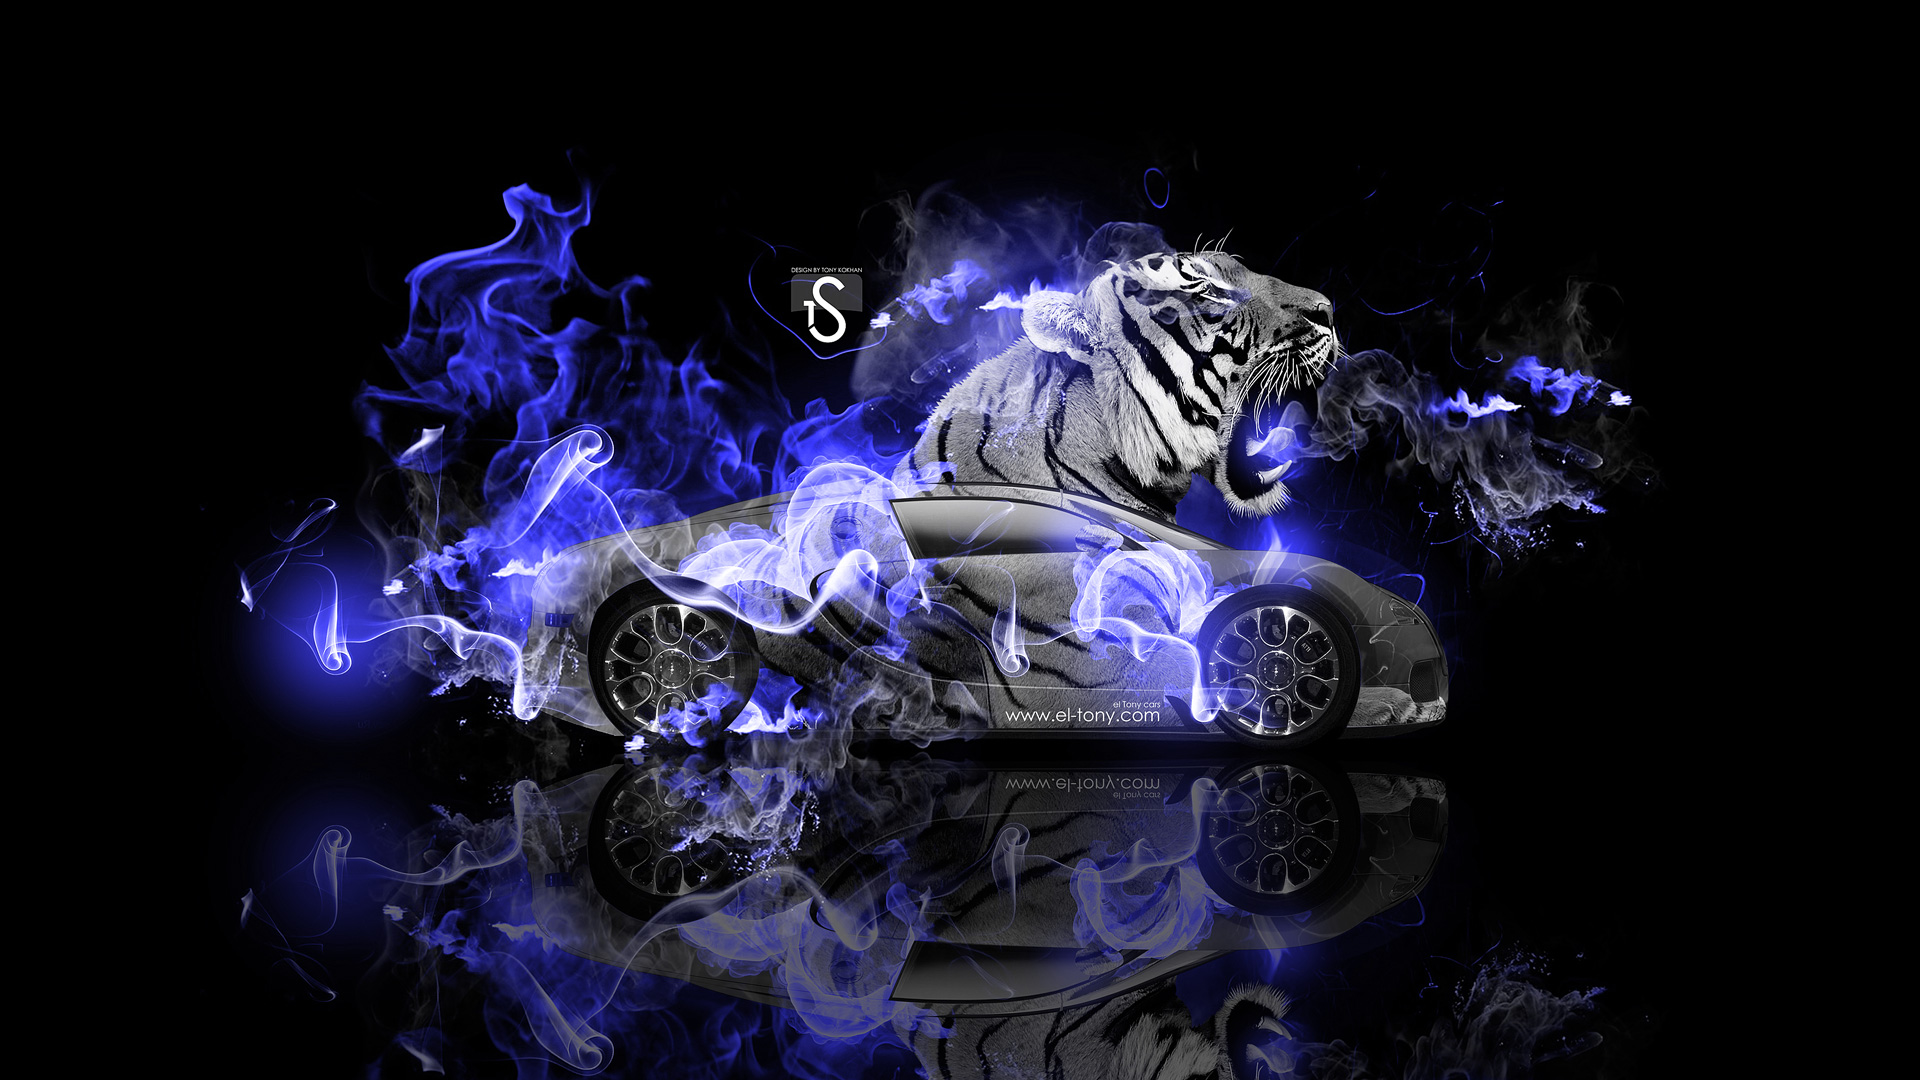 Bugatti Veyron Fantasy Tiger Blue Fire Car 2014 HD Wallpapers design 1920x1080